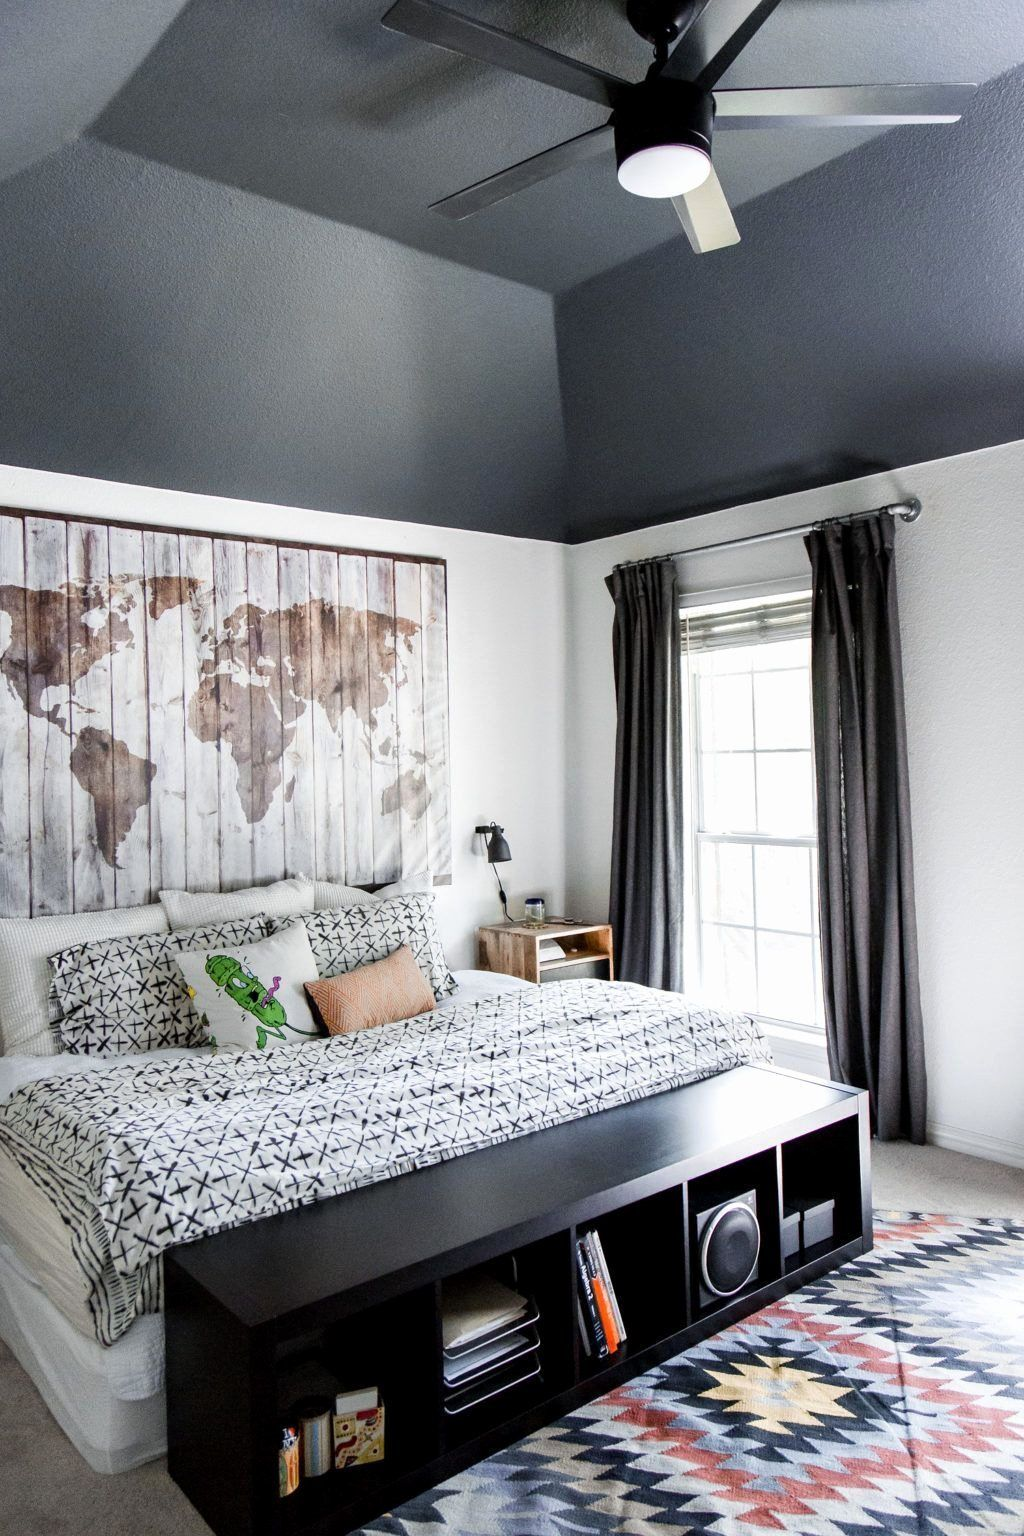 20 Year Old Bedroom Ideas Inspirational The Teenager S Room Reveal In 2020 Boy Bedroom Design Cool Bedrooms For Boys Boys Bedroom Paint